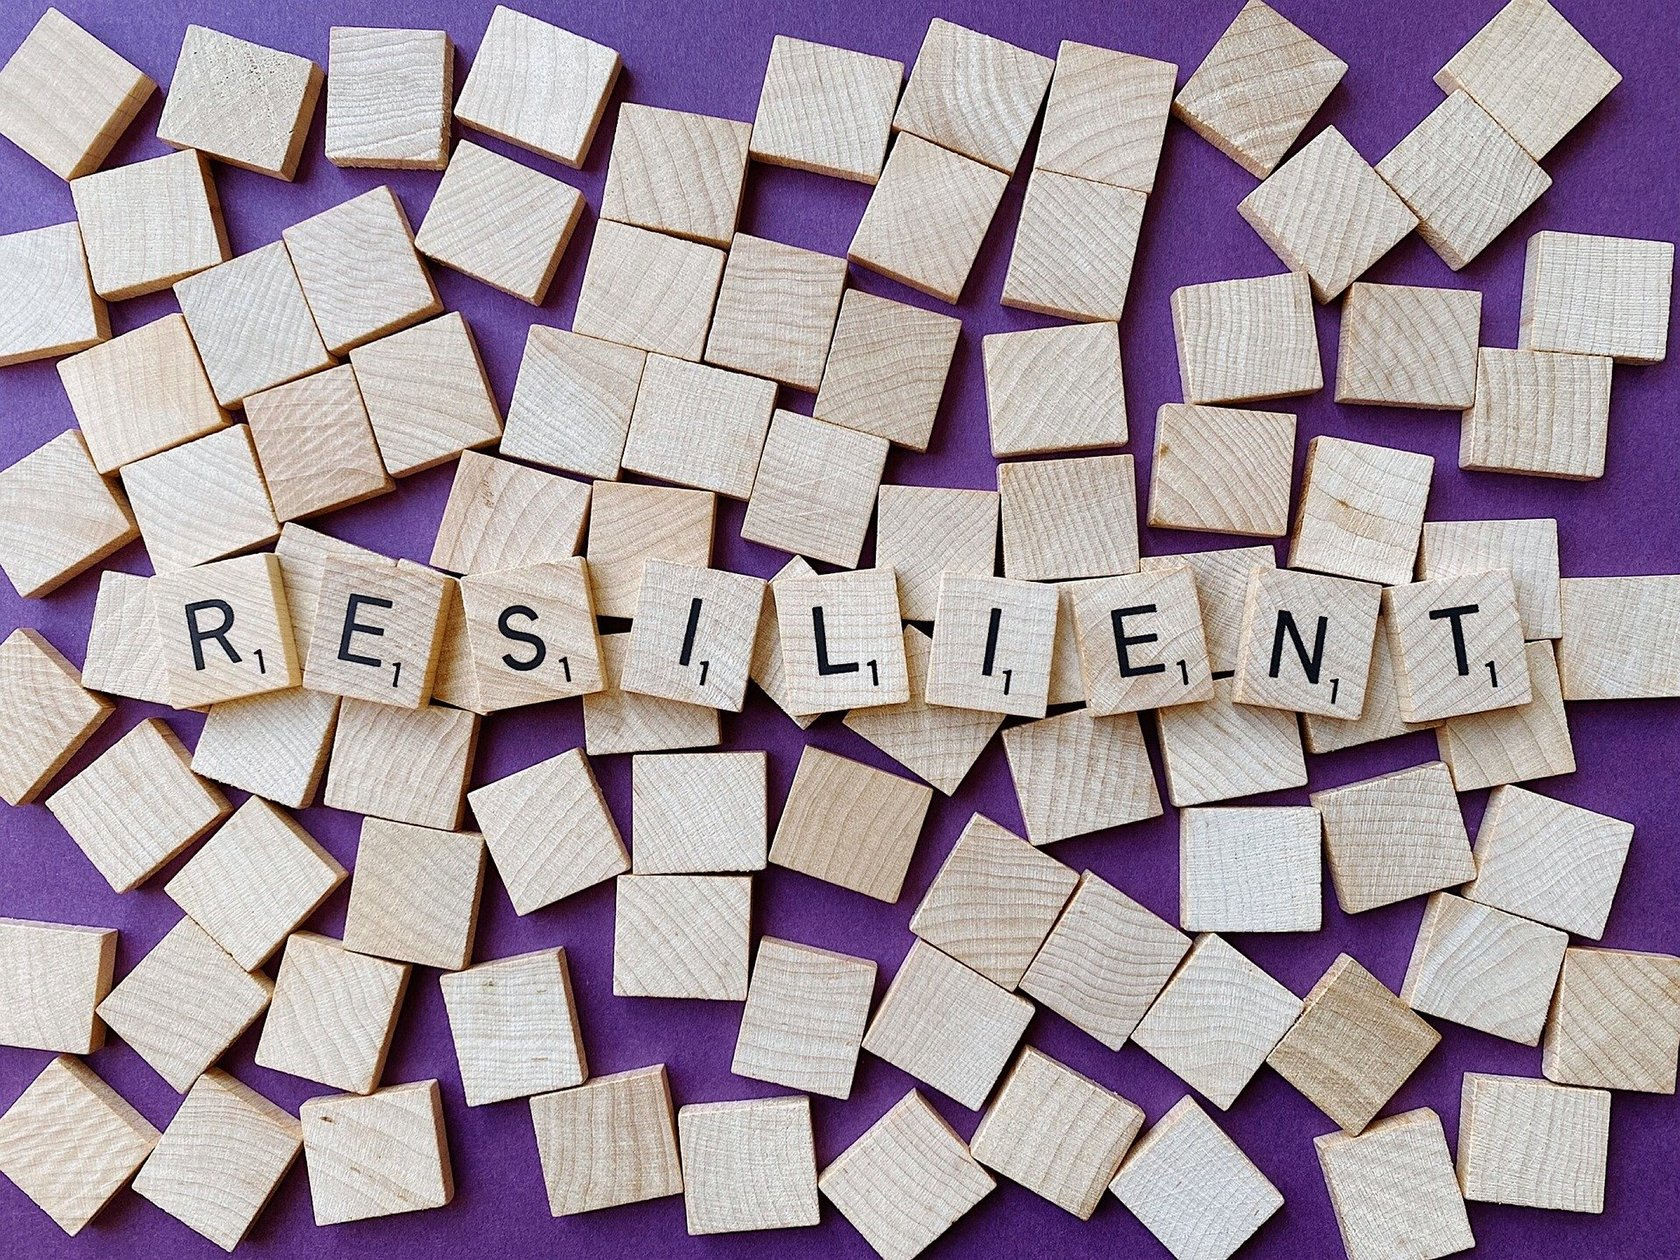 Resilience Resources Weekly: Knowing and Using Our Signature Strengths